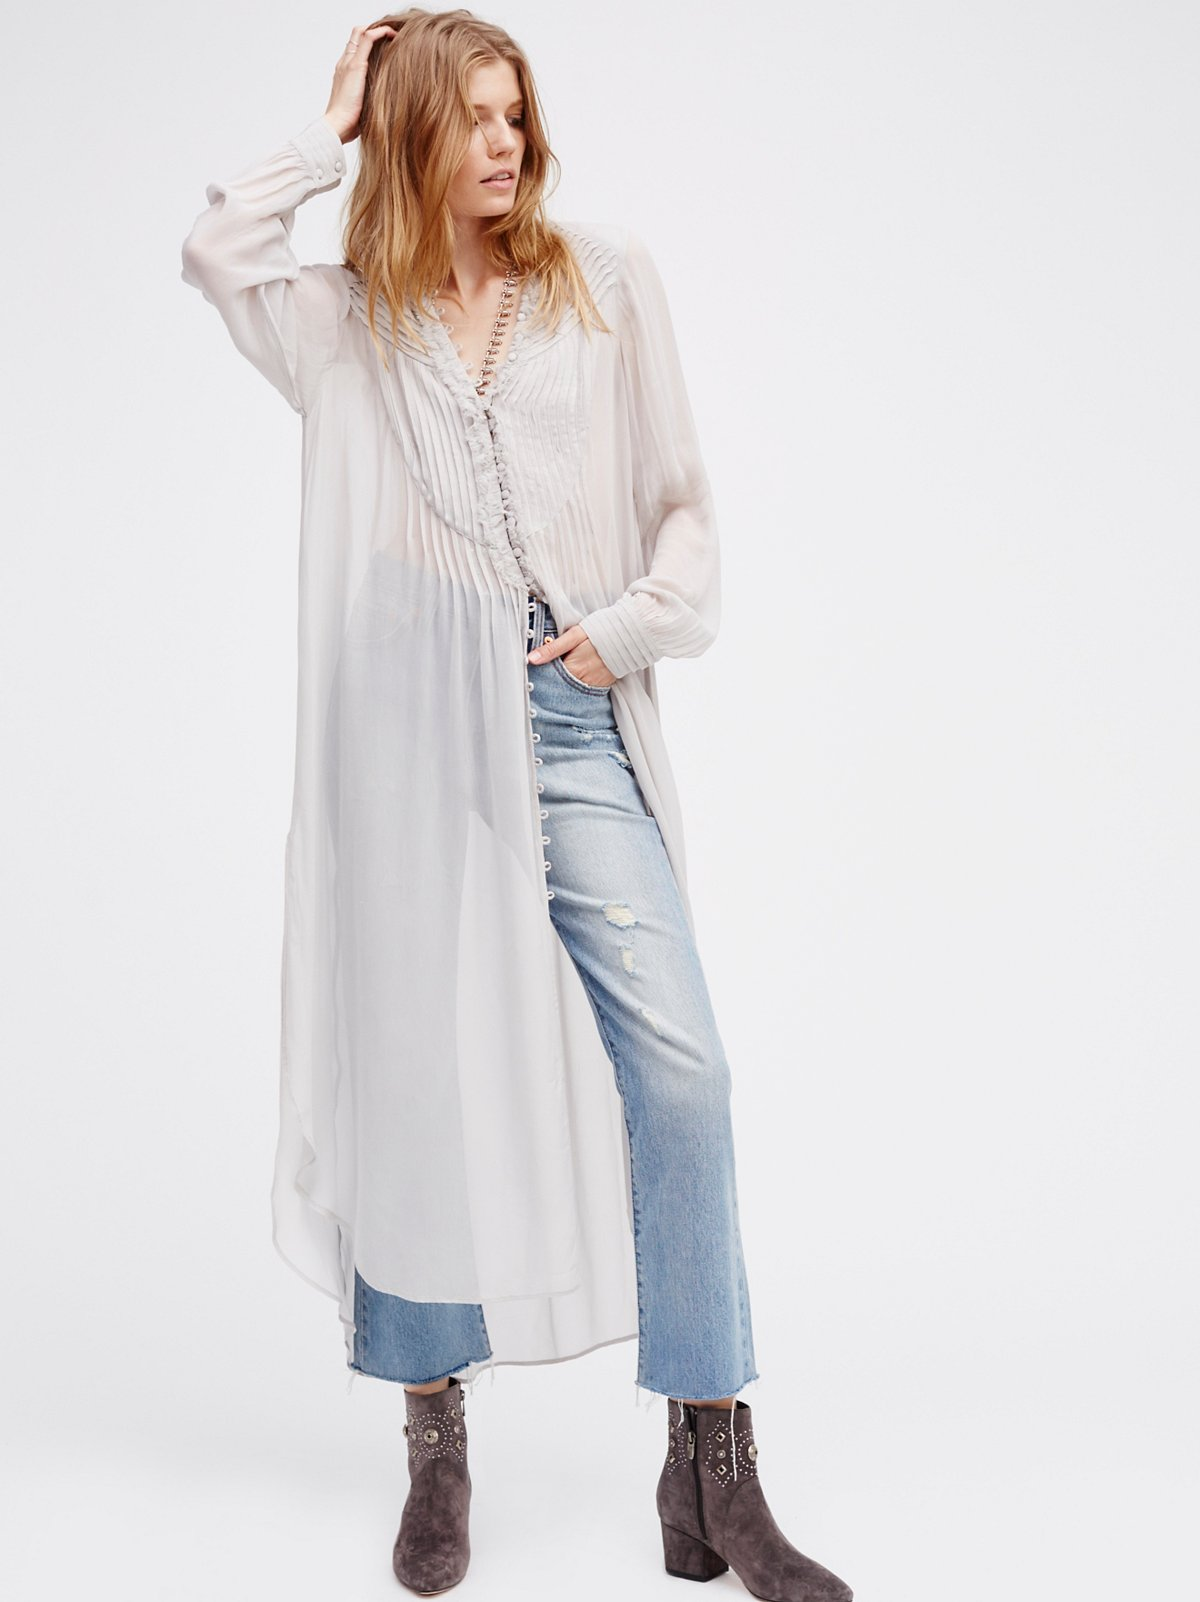 Gazing Skywards Maxi Top